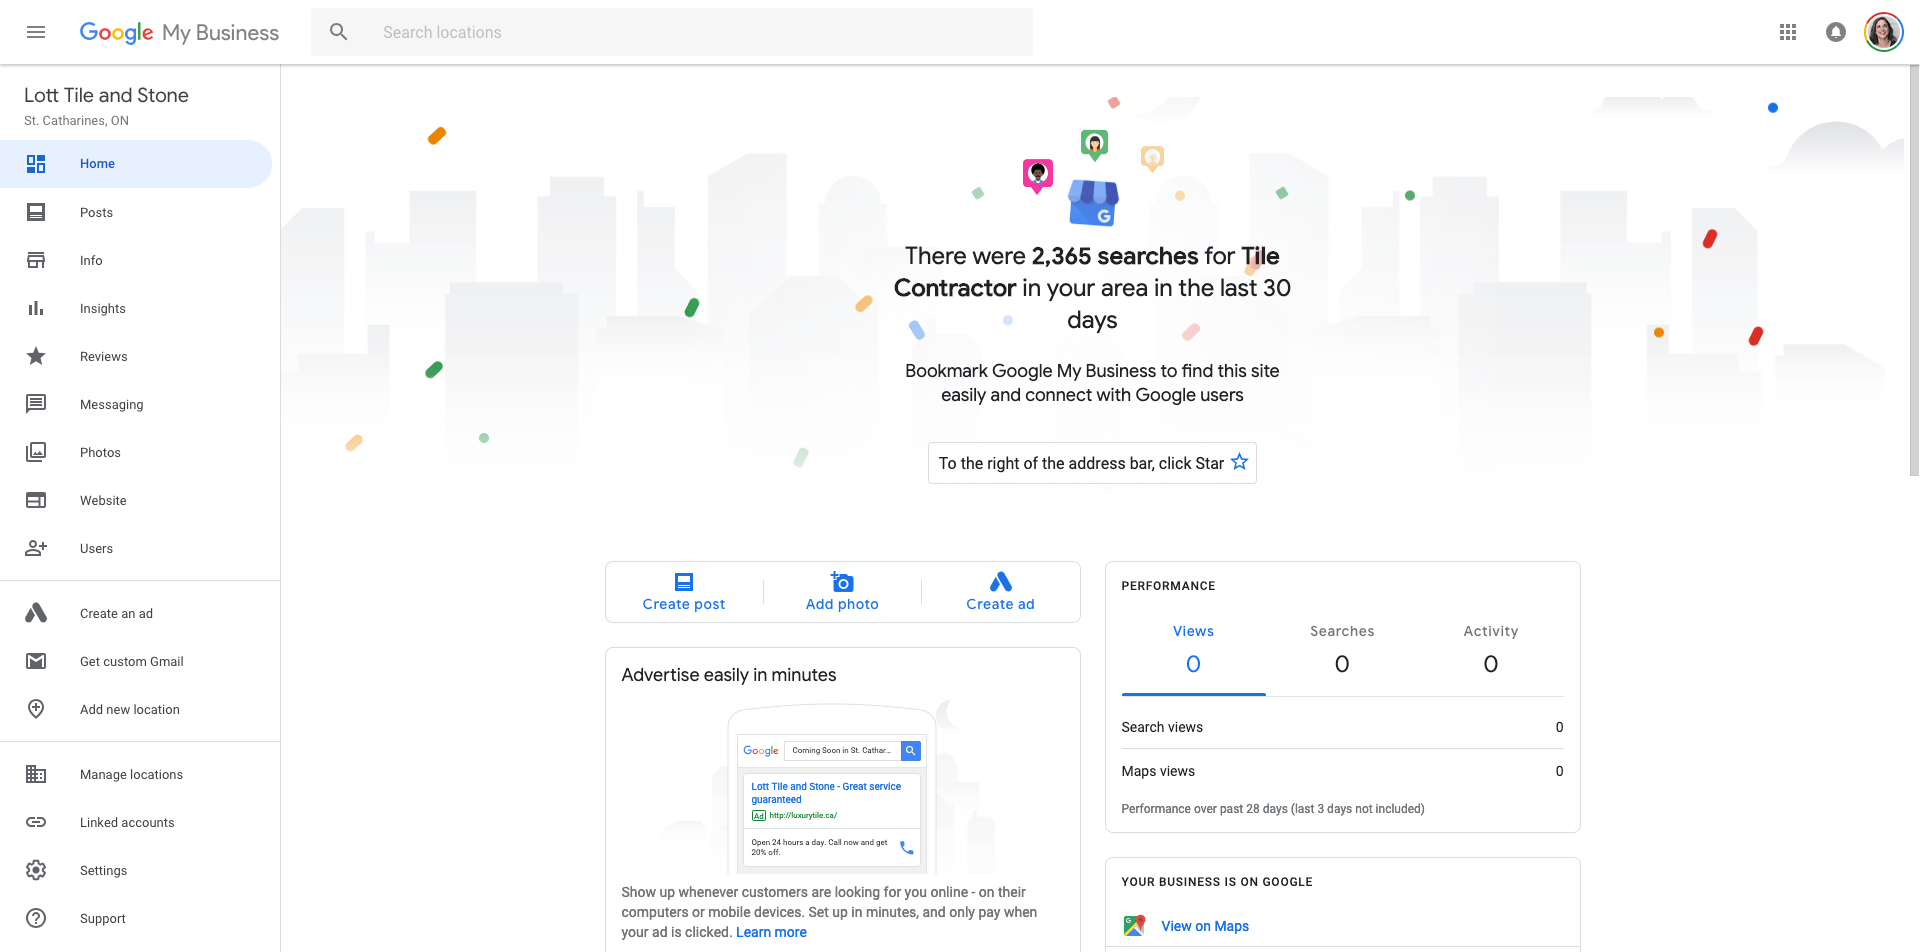 Google My Business Dashboard